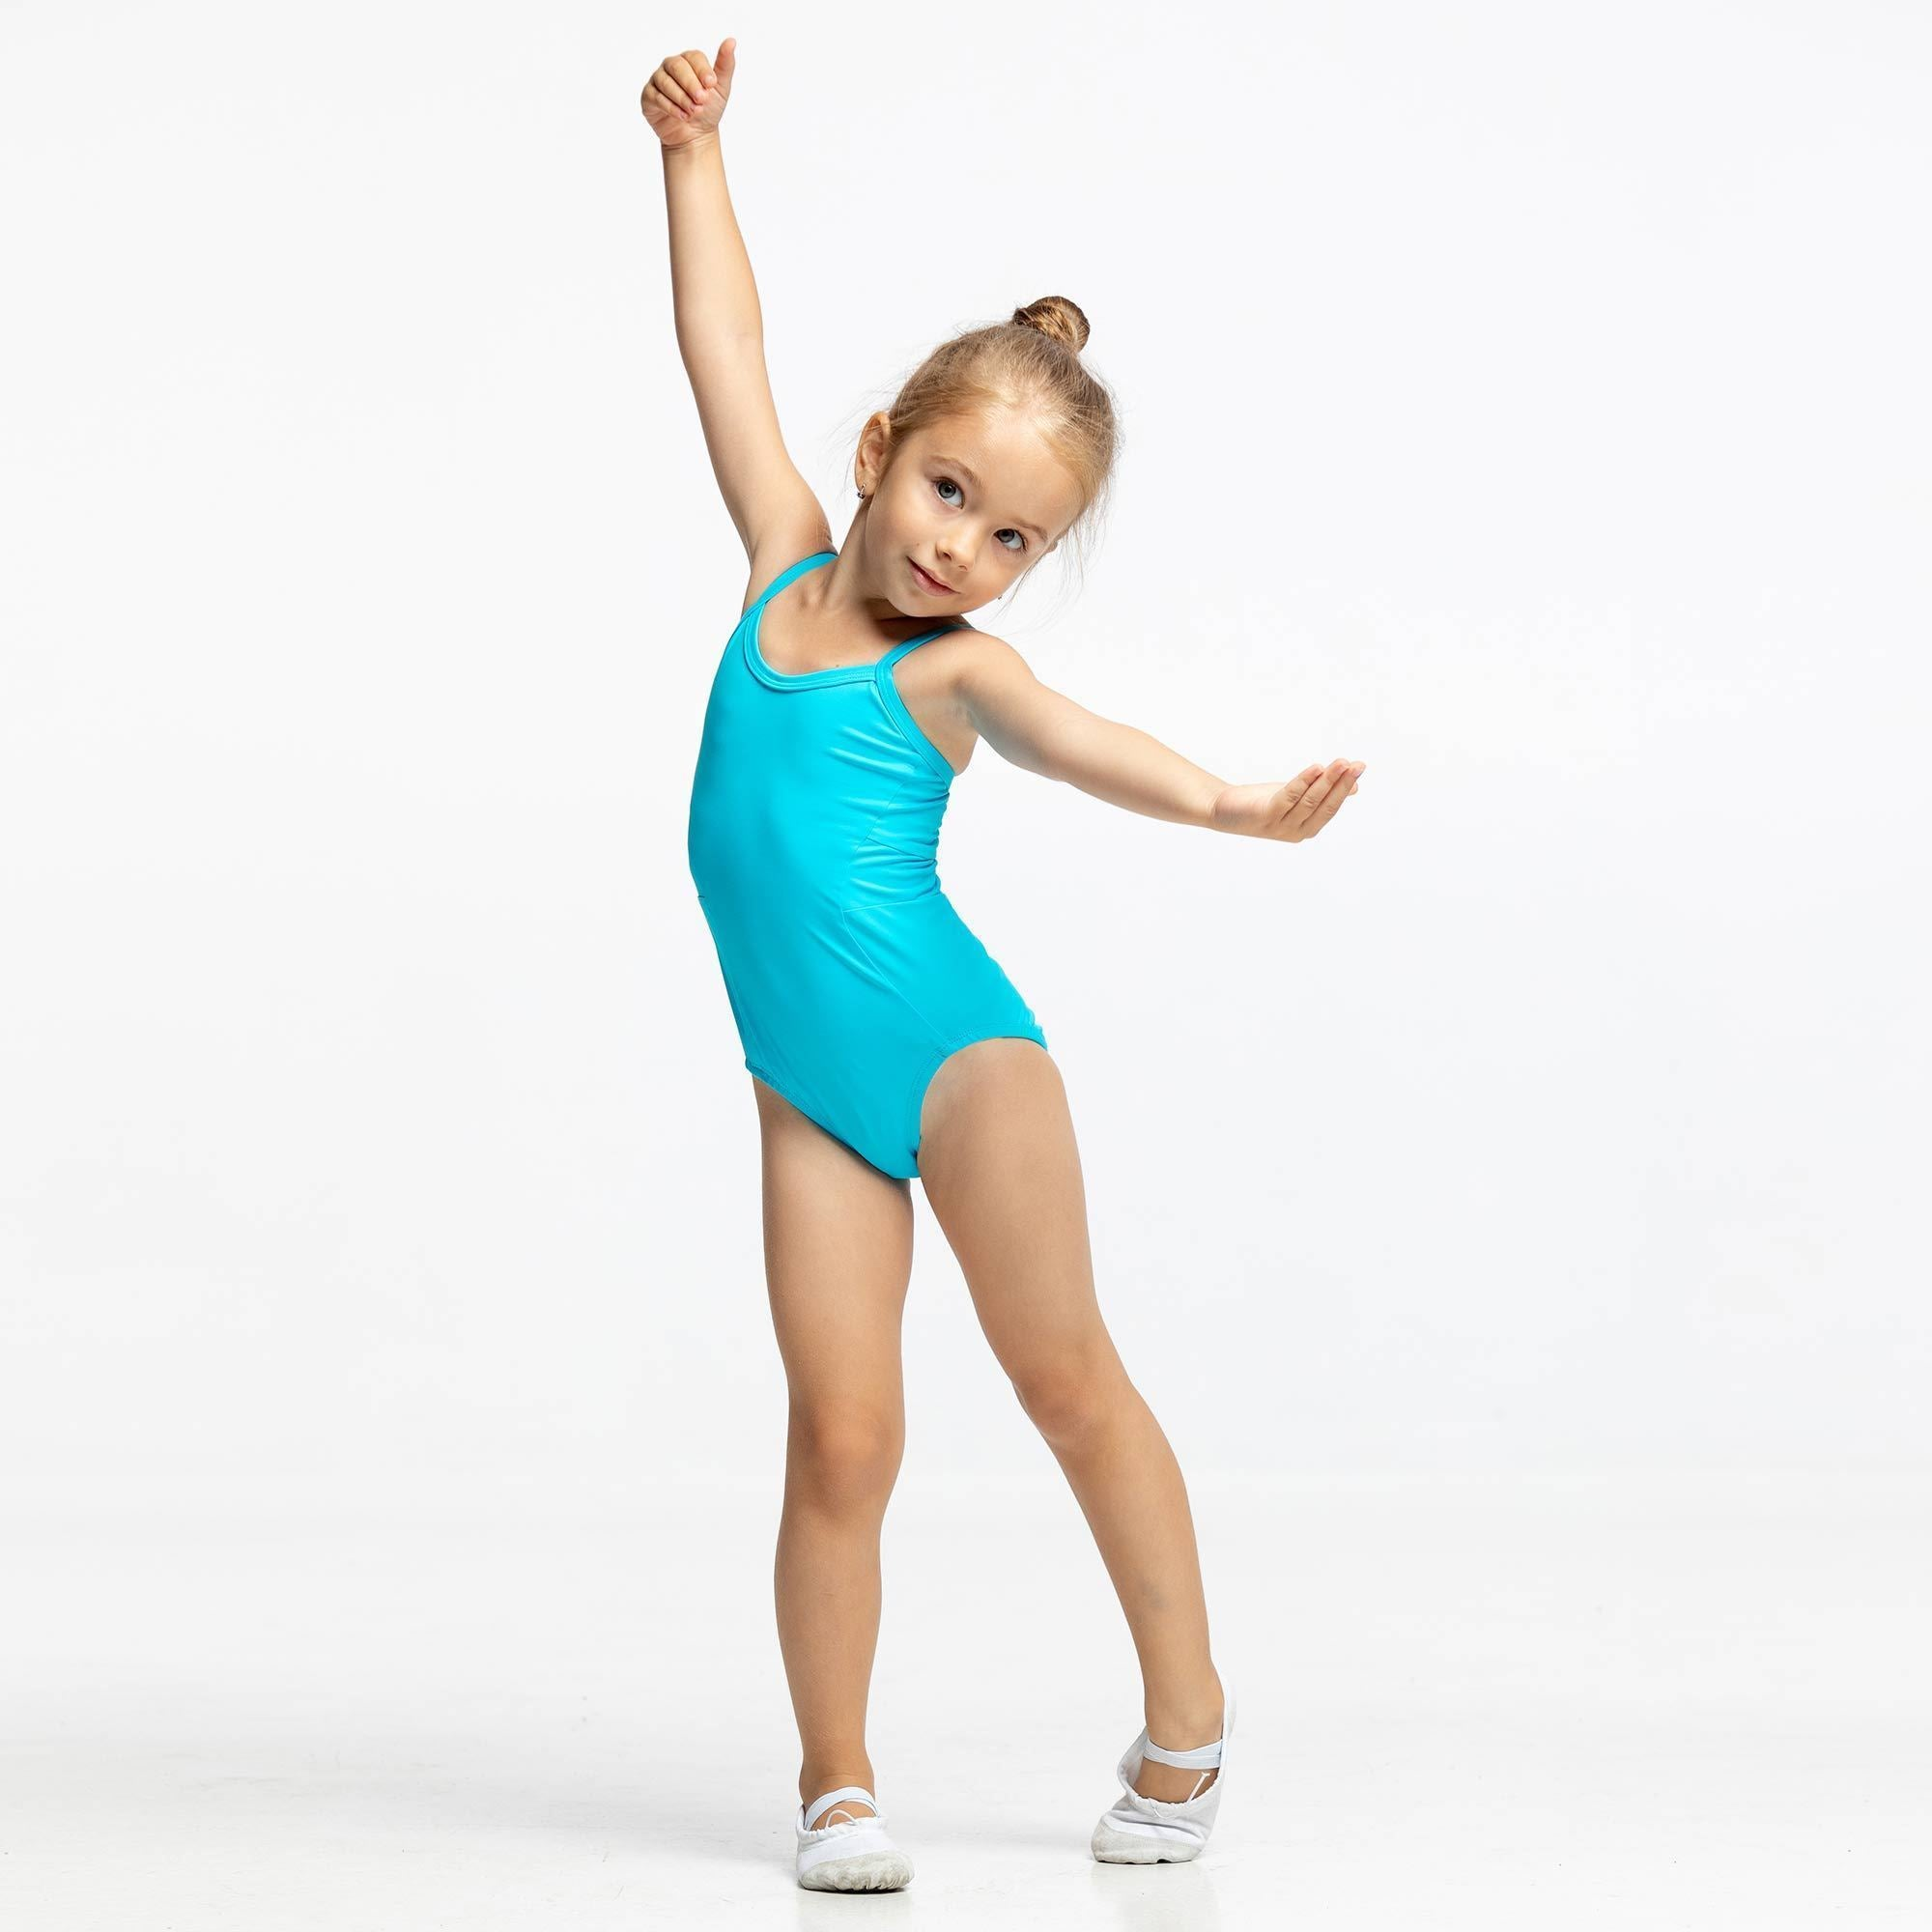 small size leotards for kids, turquoise color, green color